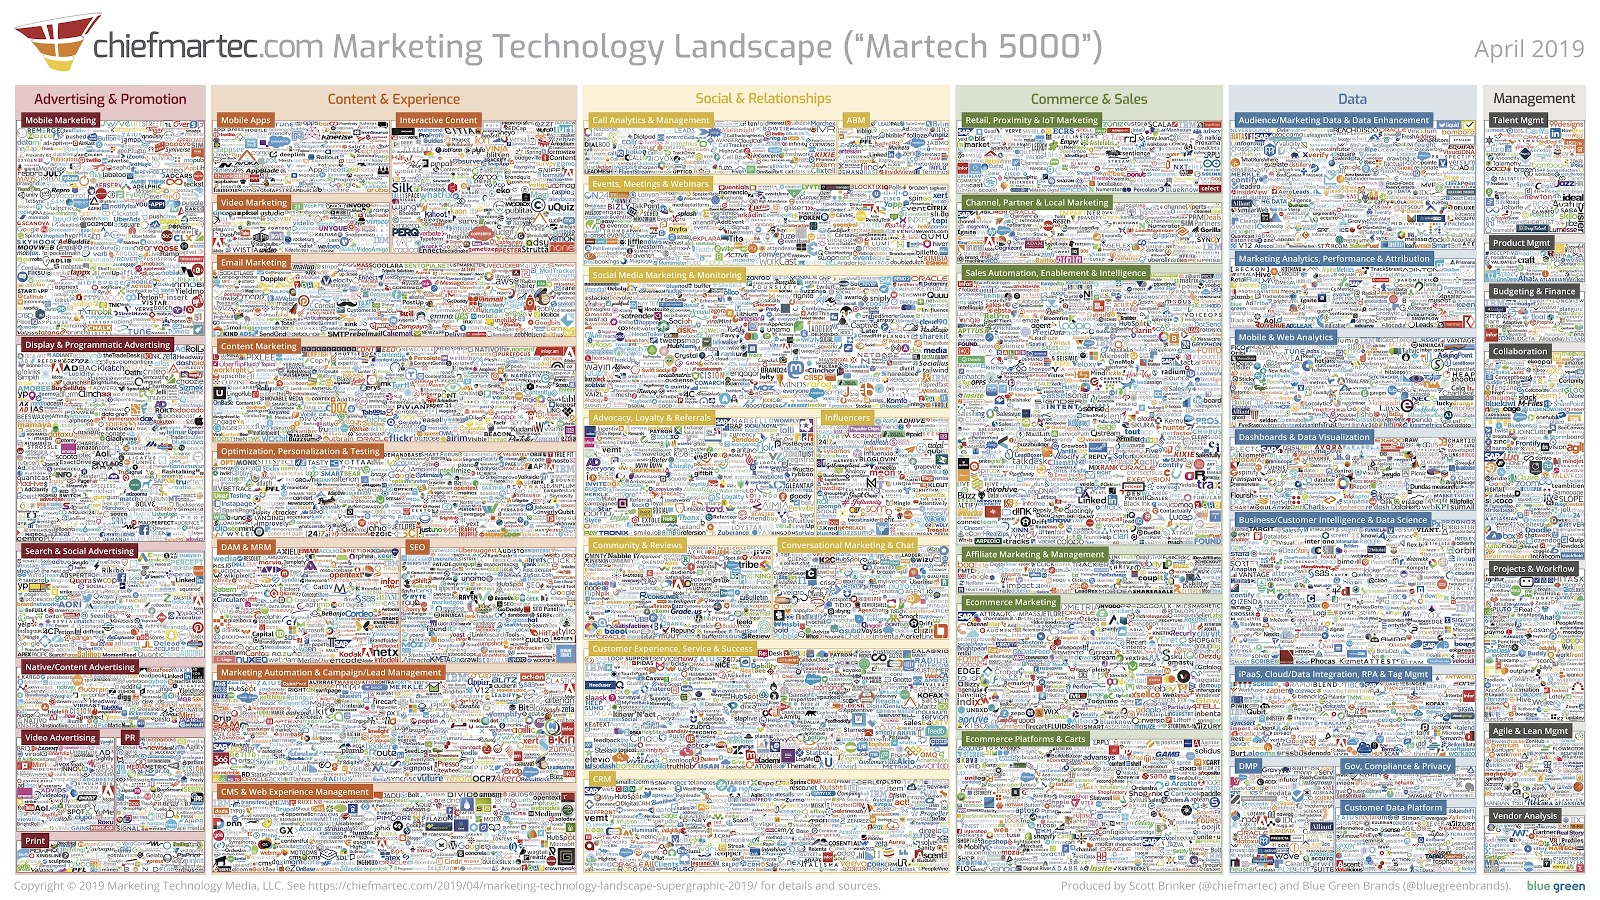 a_picture_of_all_of_the_marketing_software_companies_the_martech_5000